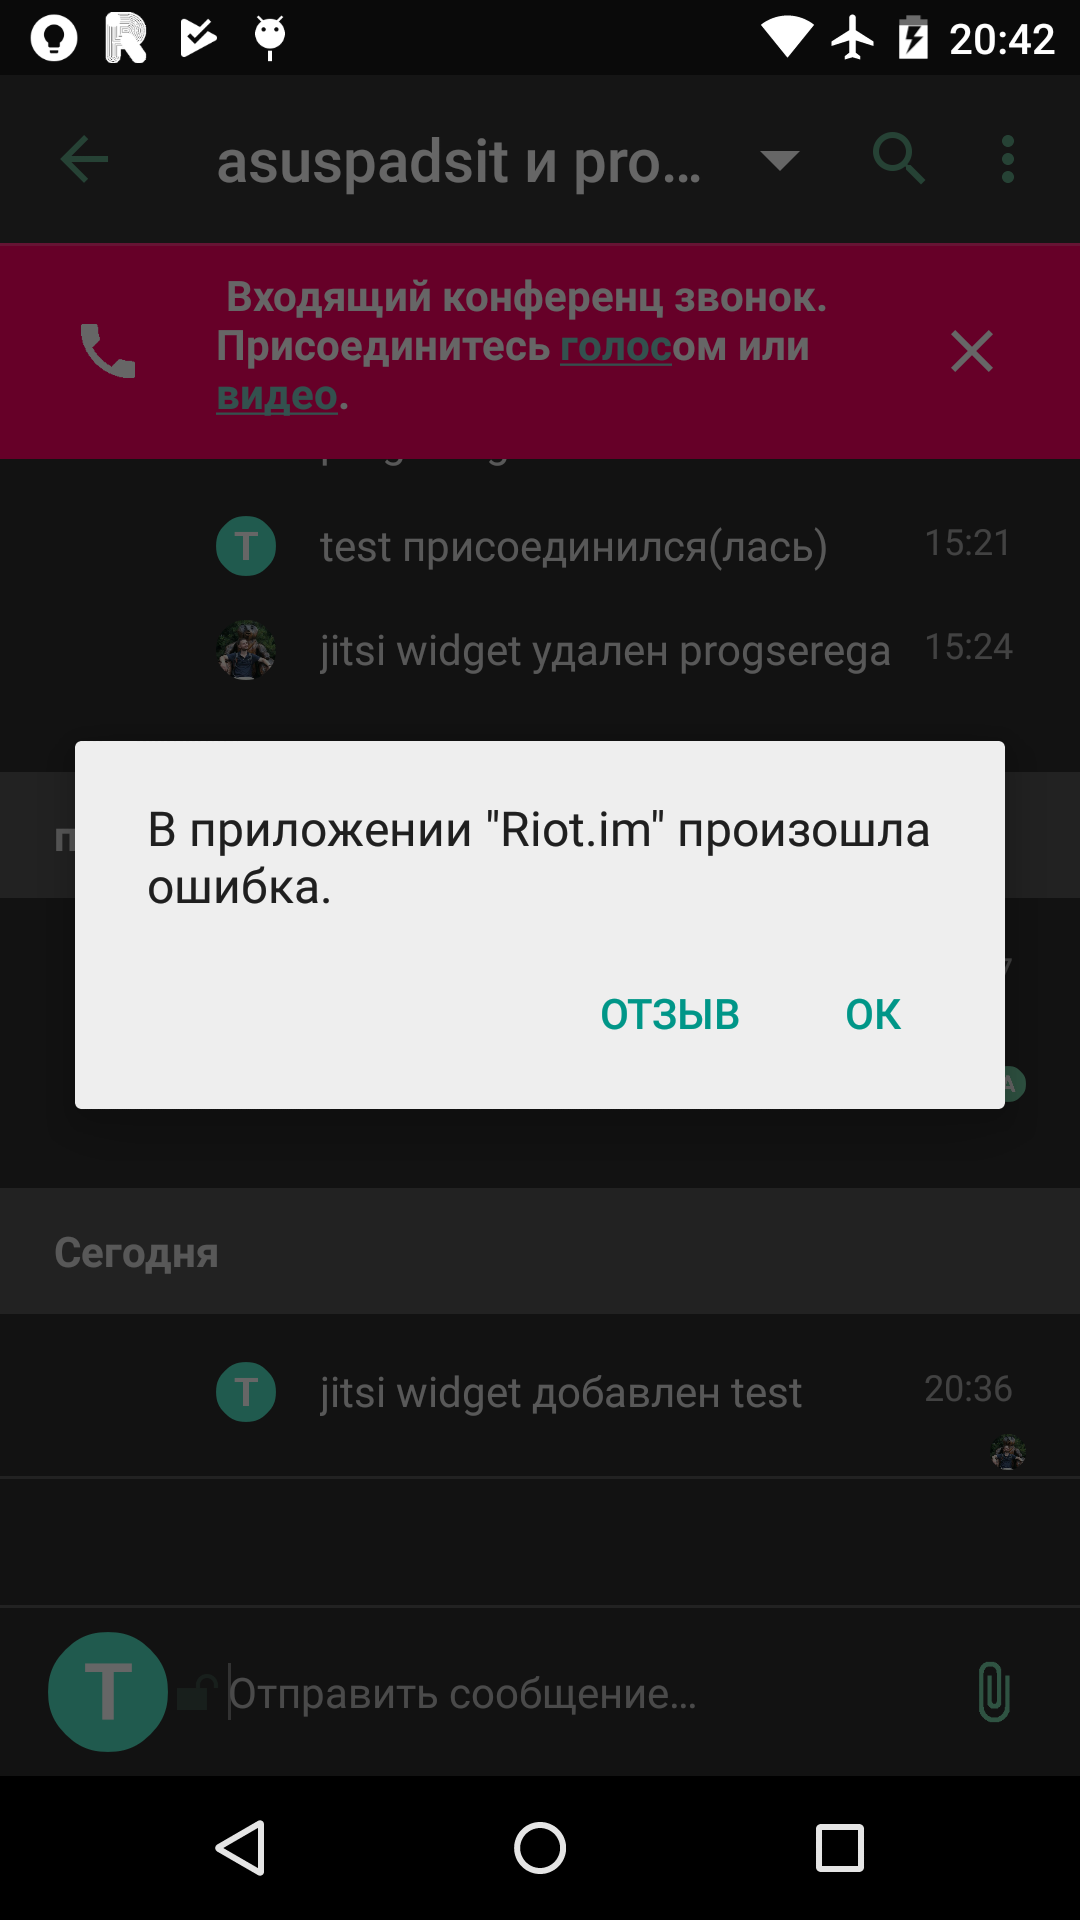 not English] app crashes when start jitsi conference or try join to